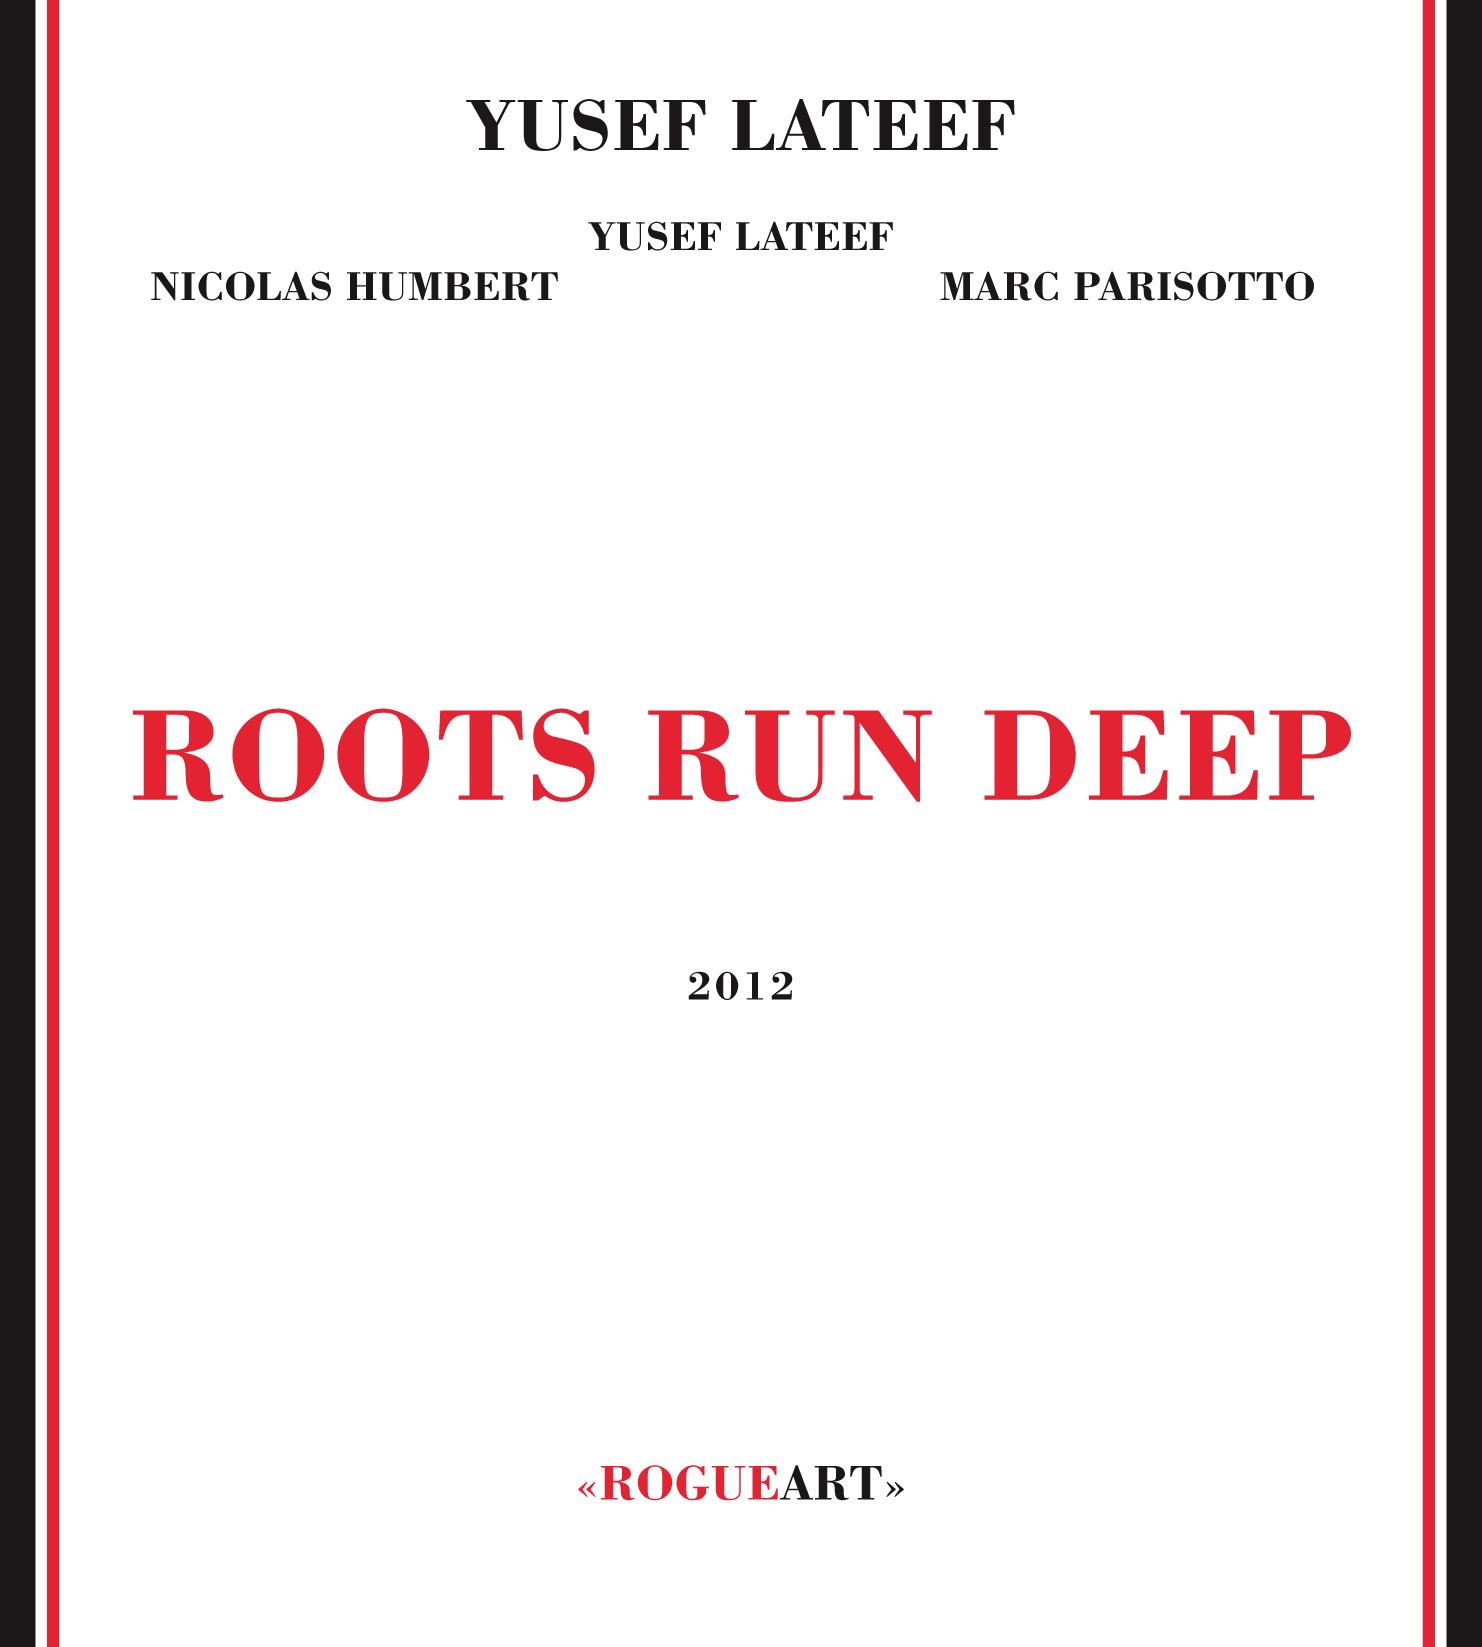 Front cover of the album ROOTS RUN DEEP